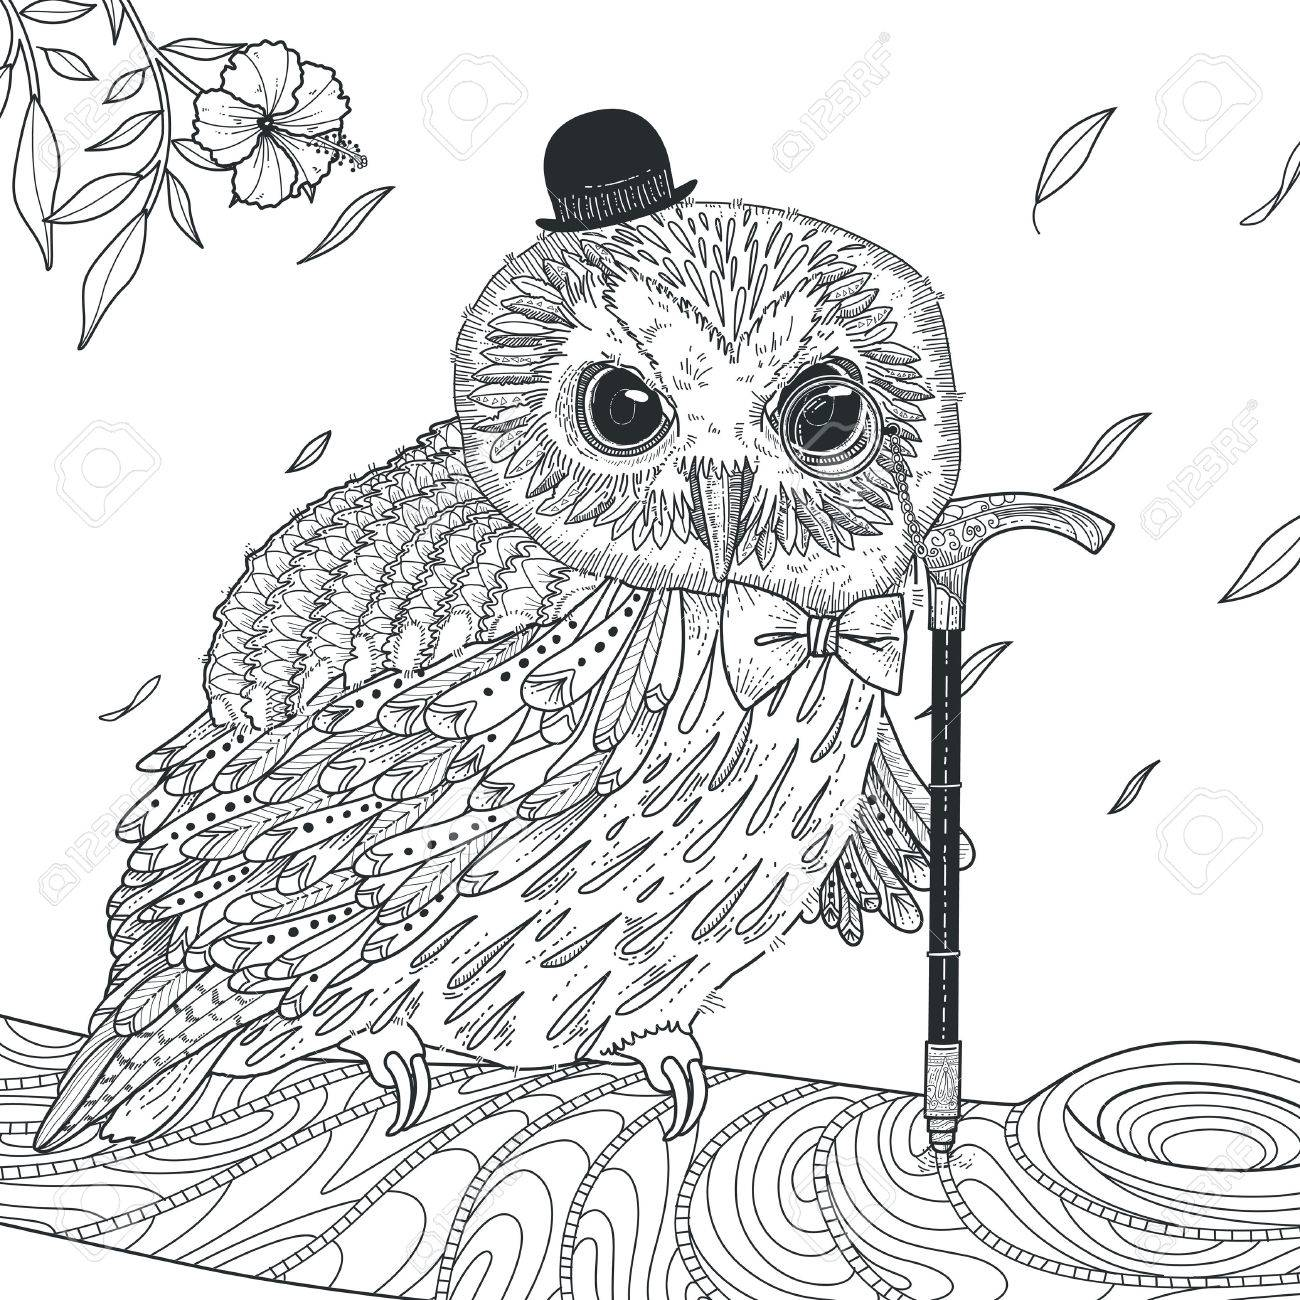 Adorable Owl Coloring Page In Exquisite Style Royalty Free Cliparts ...